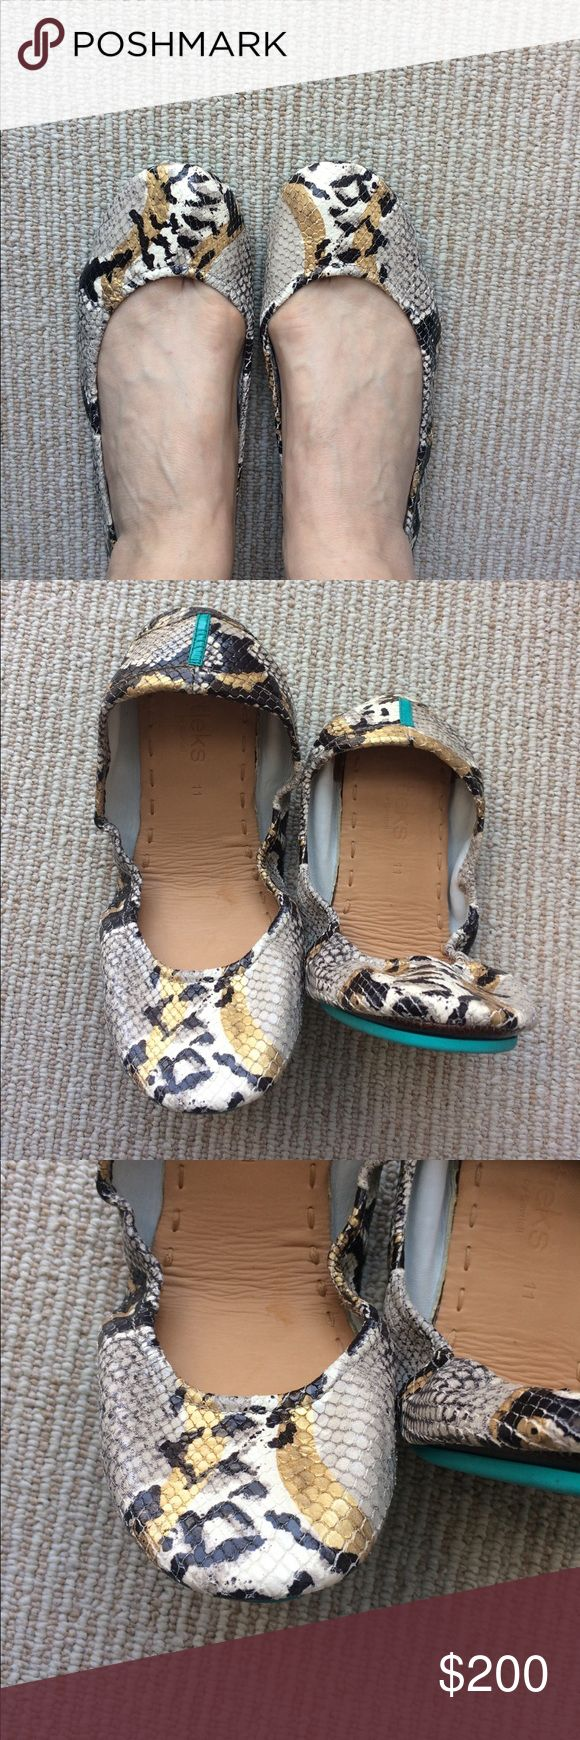 Sand Snake Tieks Gorgeous Sand Snake Tieks in excellent condition. Small amount of wear on both heels as pictured. Will include box, flower and Tieks bags. Tieks Shoes Flats & Loafers